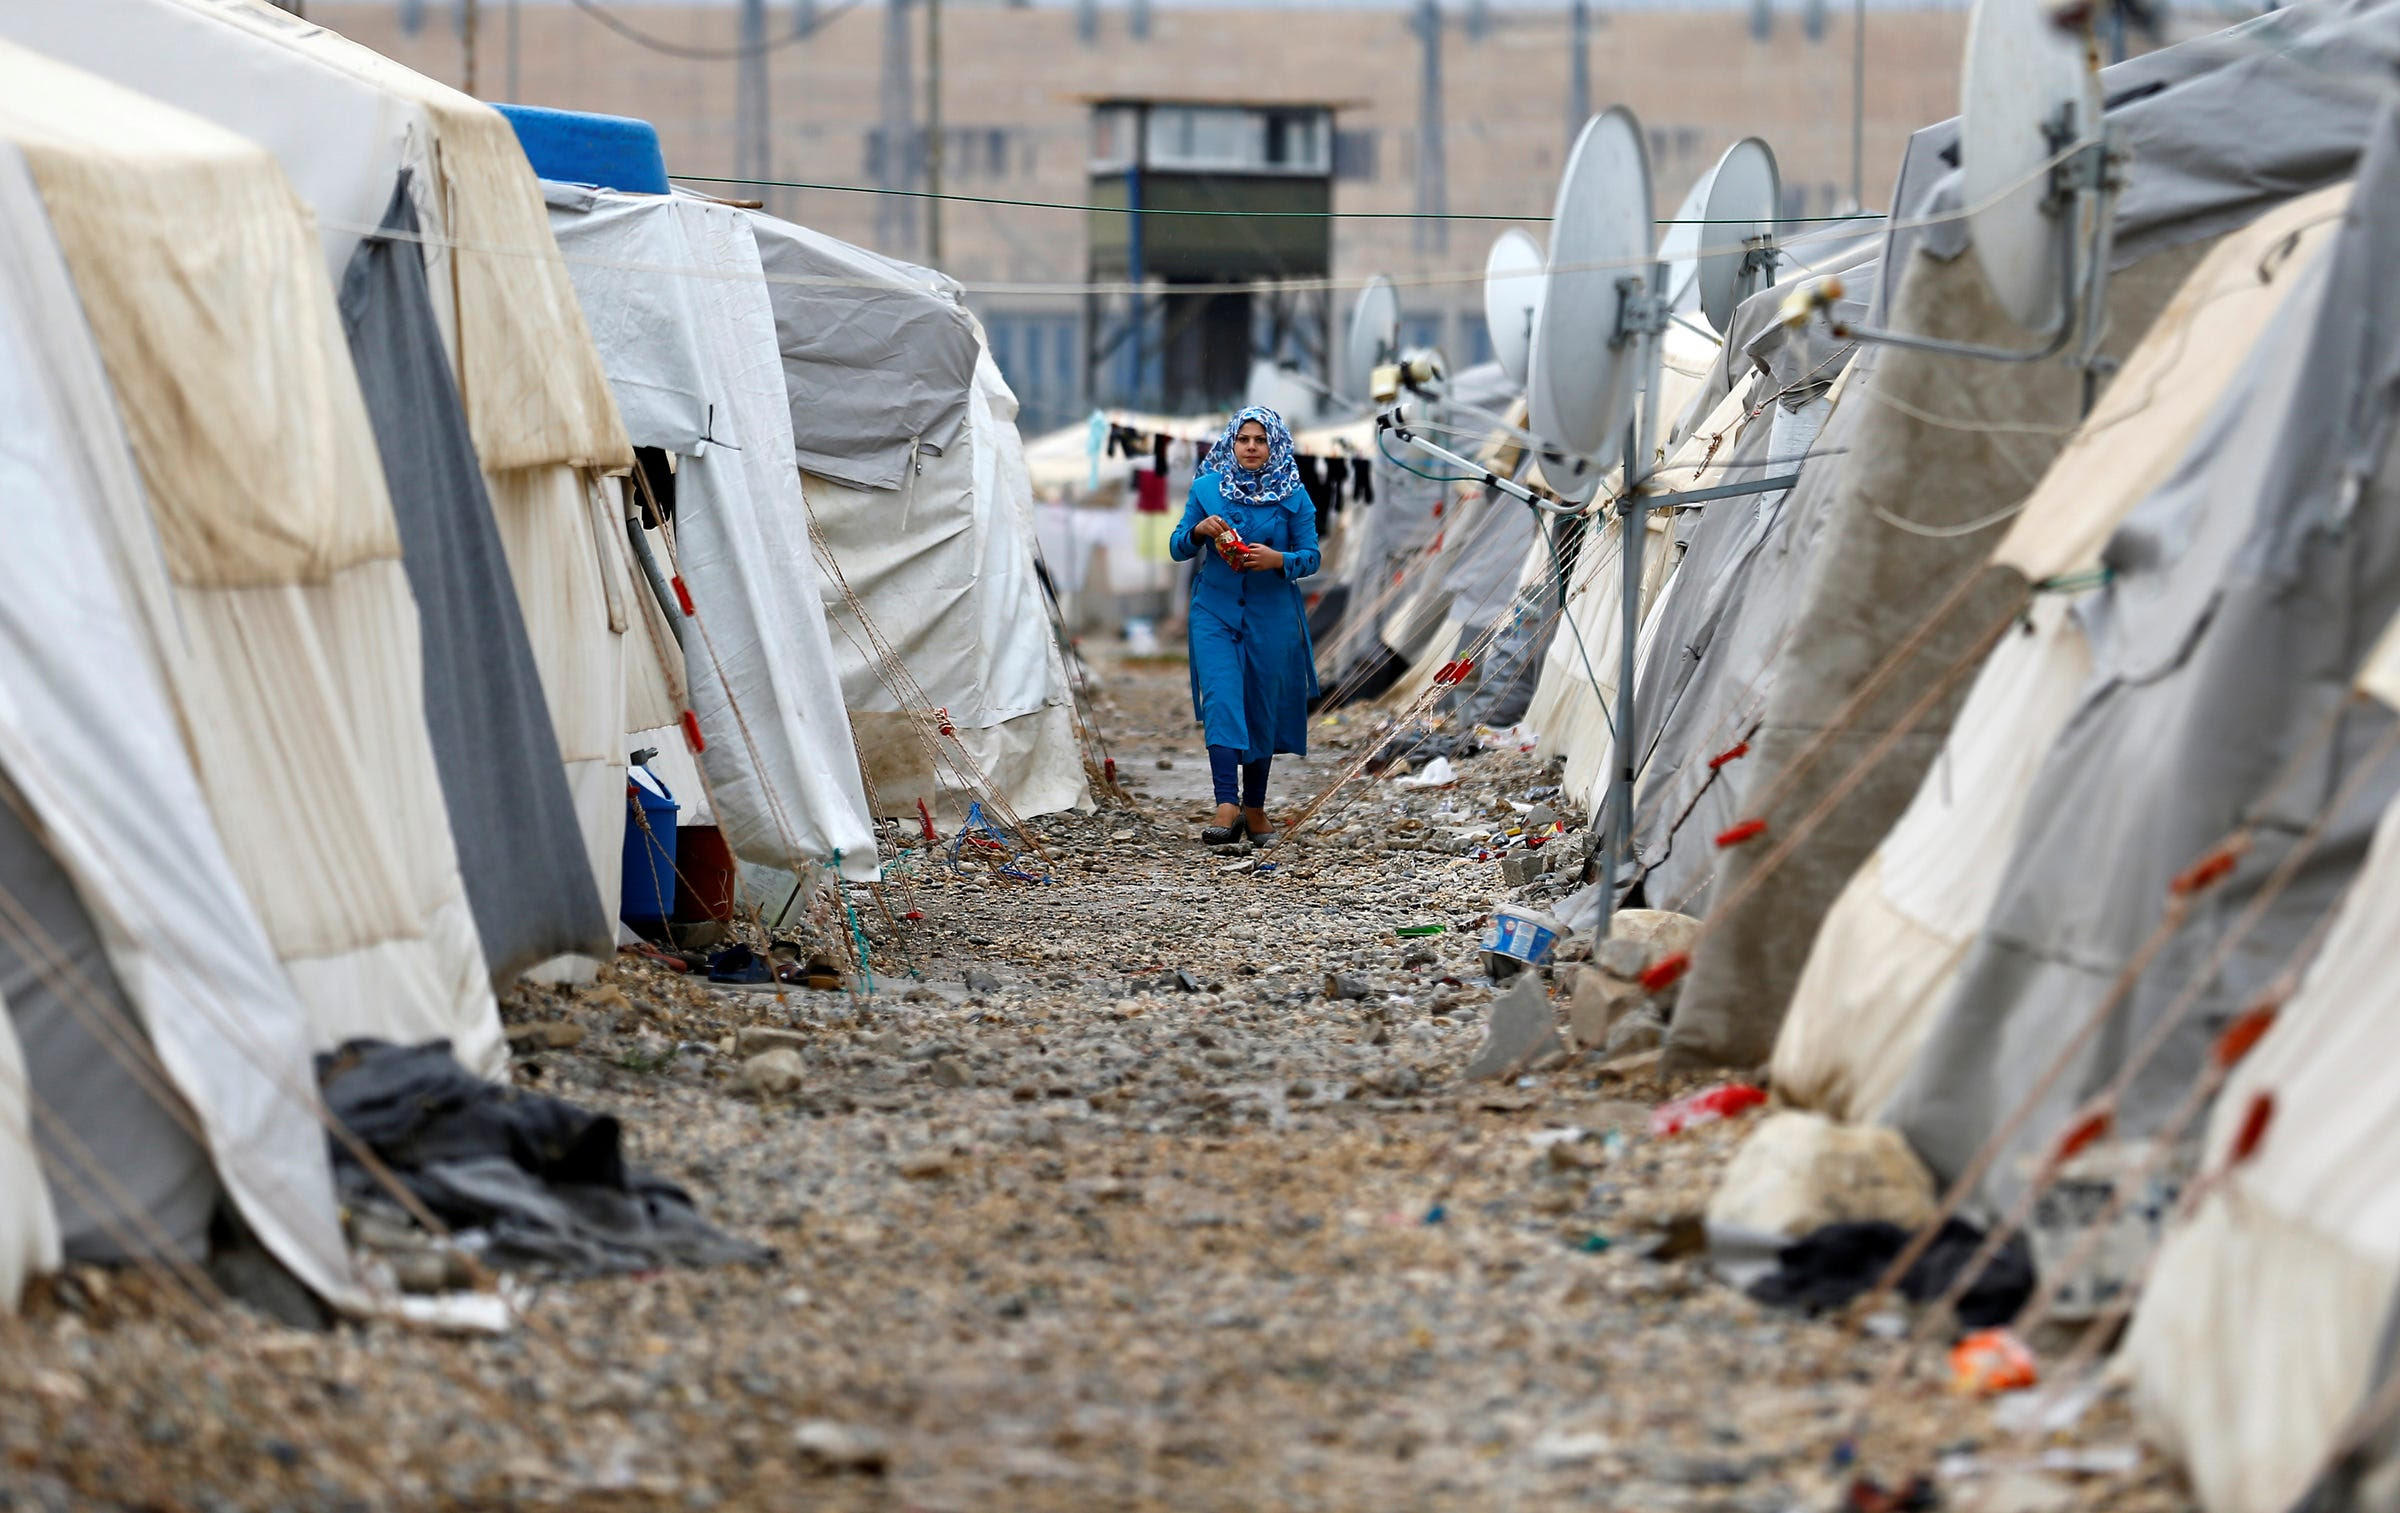 A Syrian refugee woman walks between tents in Nizip refugee camp, near the Turkish-Syrian border in Gaziantep province, Turkey, November 30, 2016.